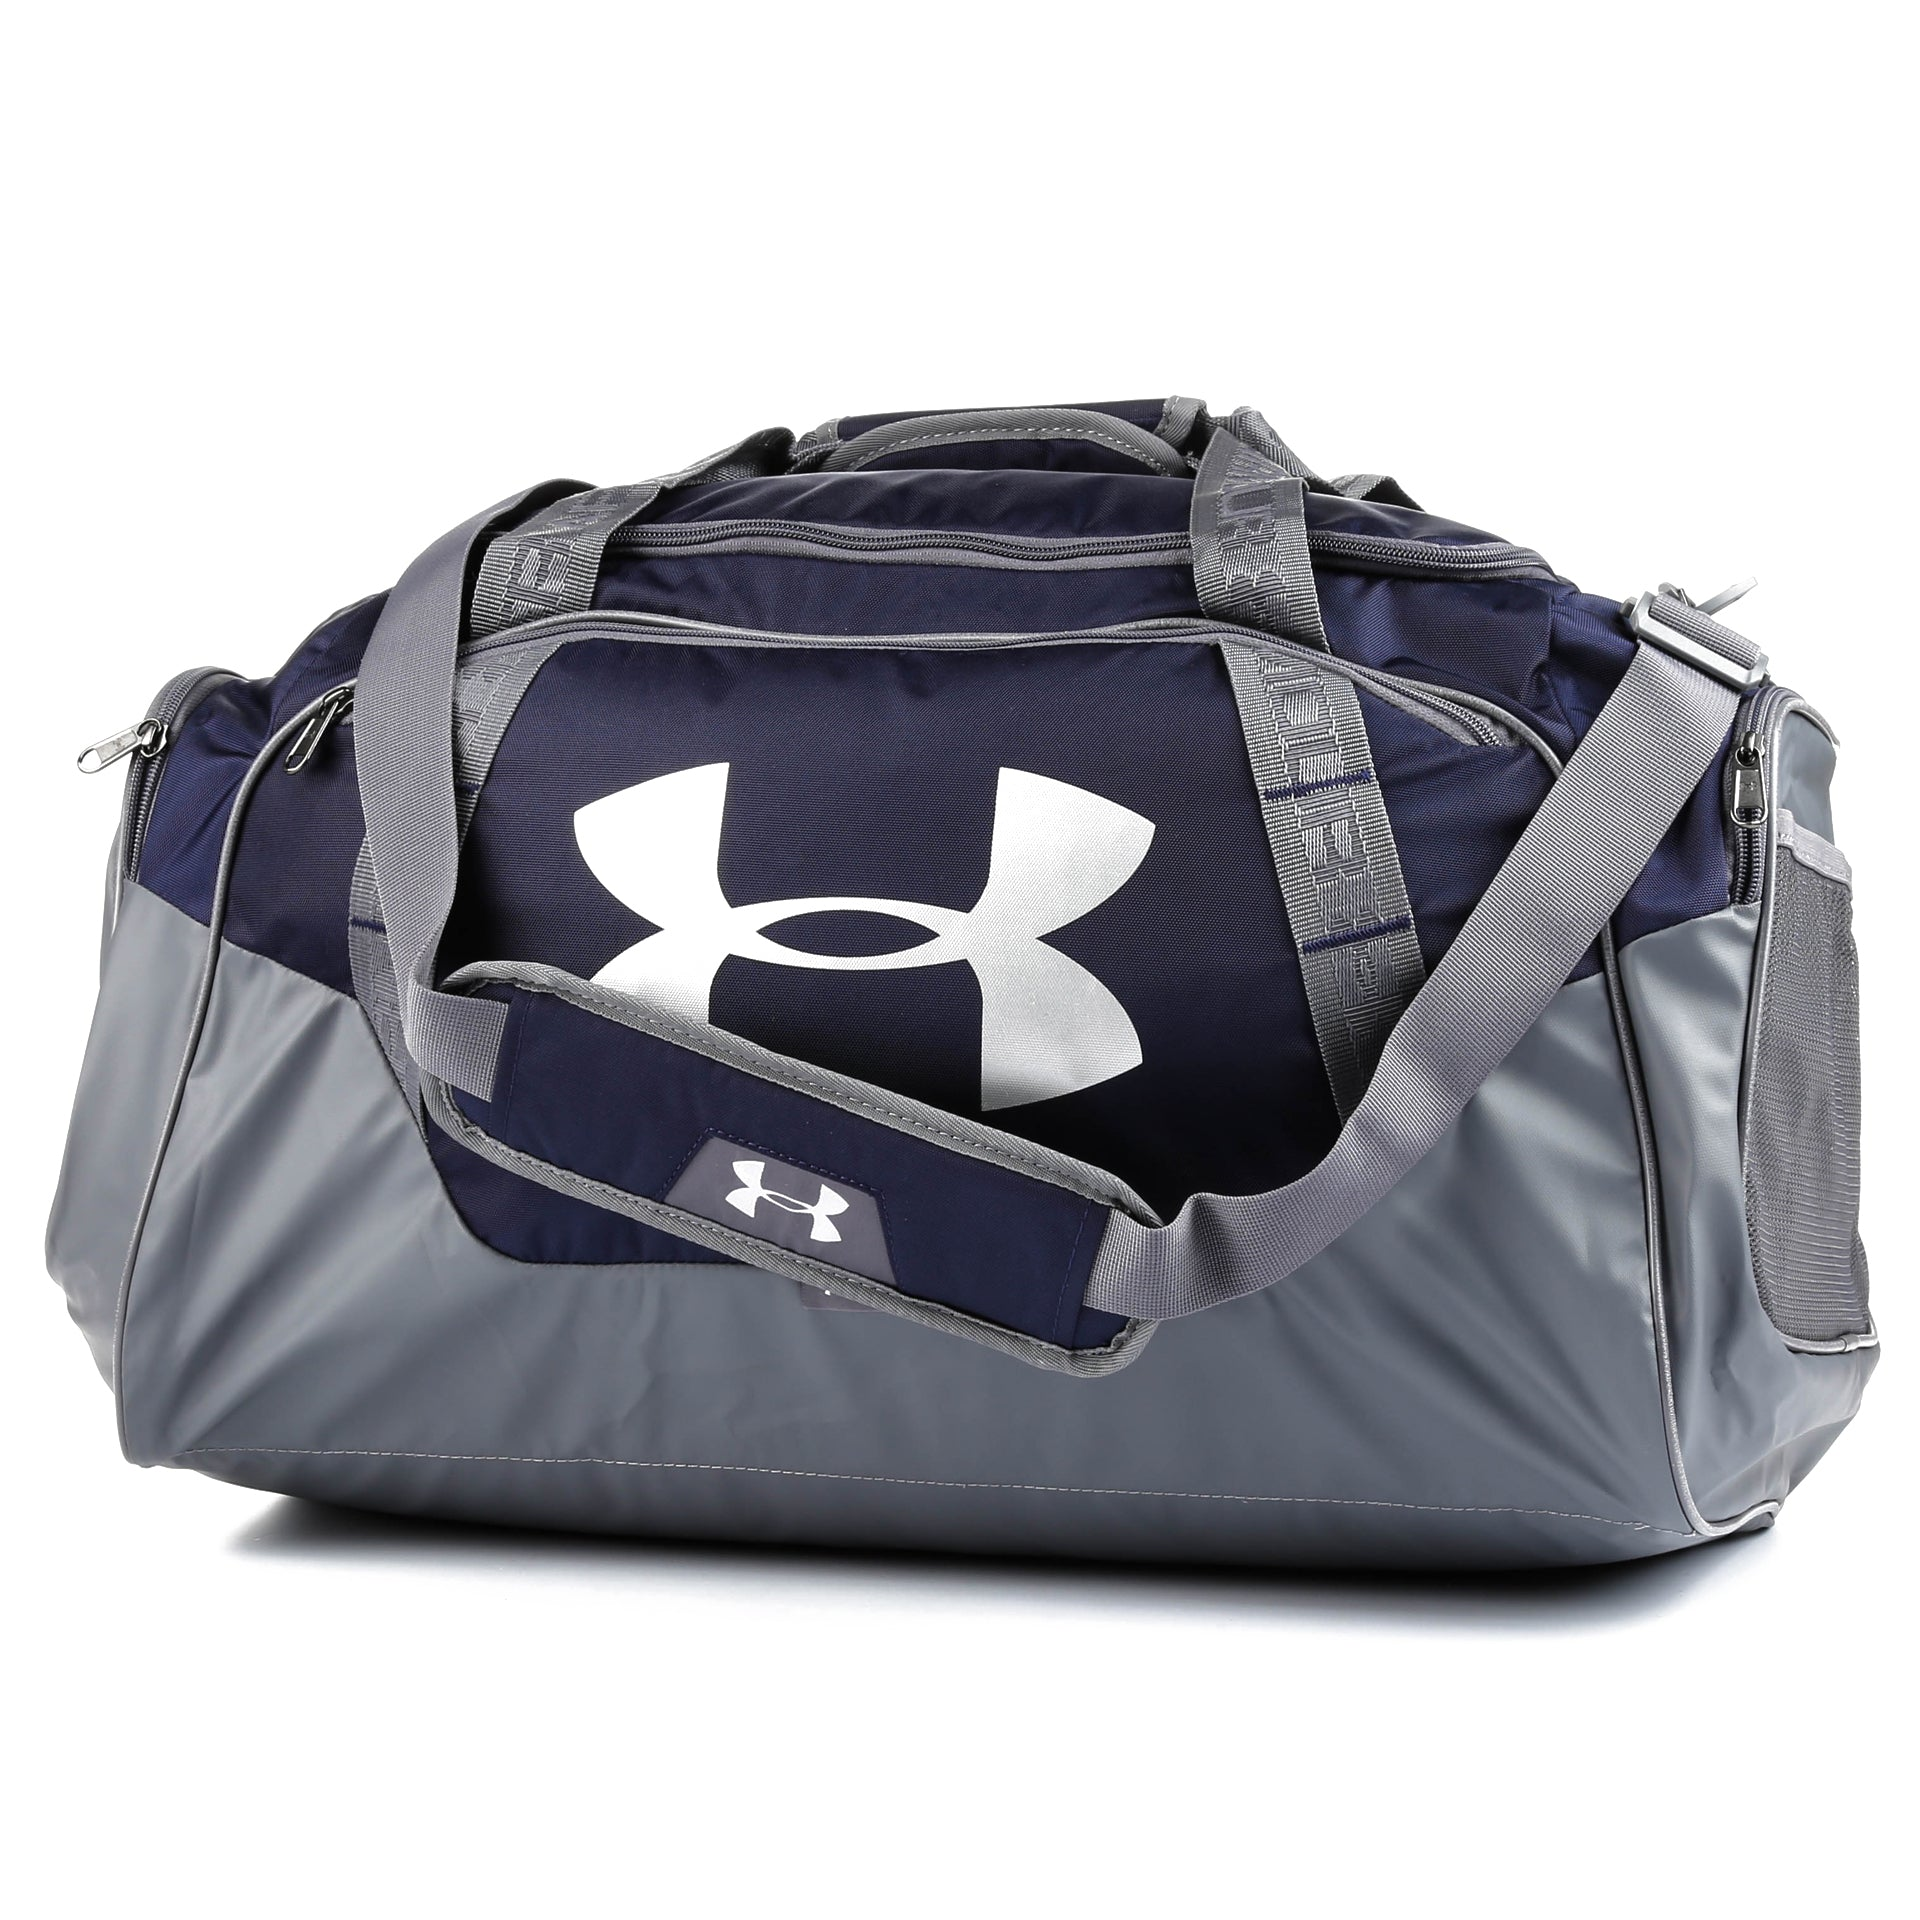 623fd35627cb Under Armour Undeniable 3.0 Medium Duffle bag - Midnight Navy   Graphite